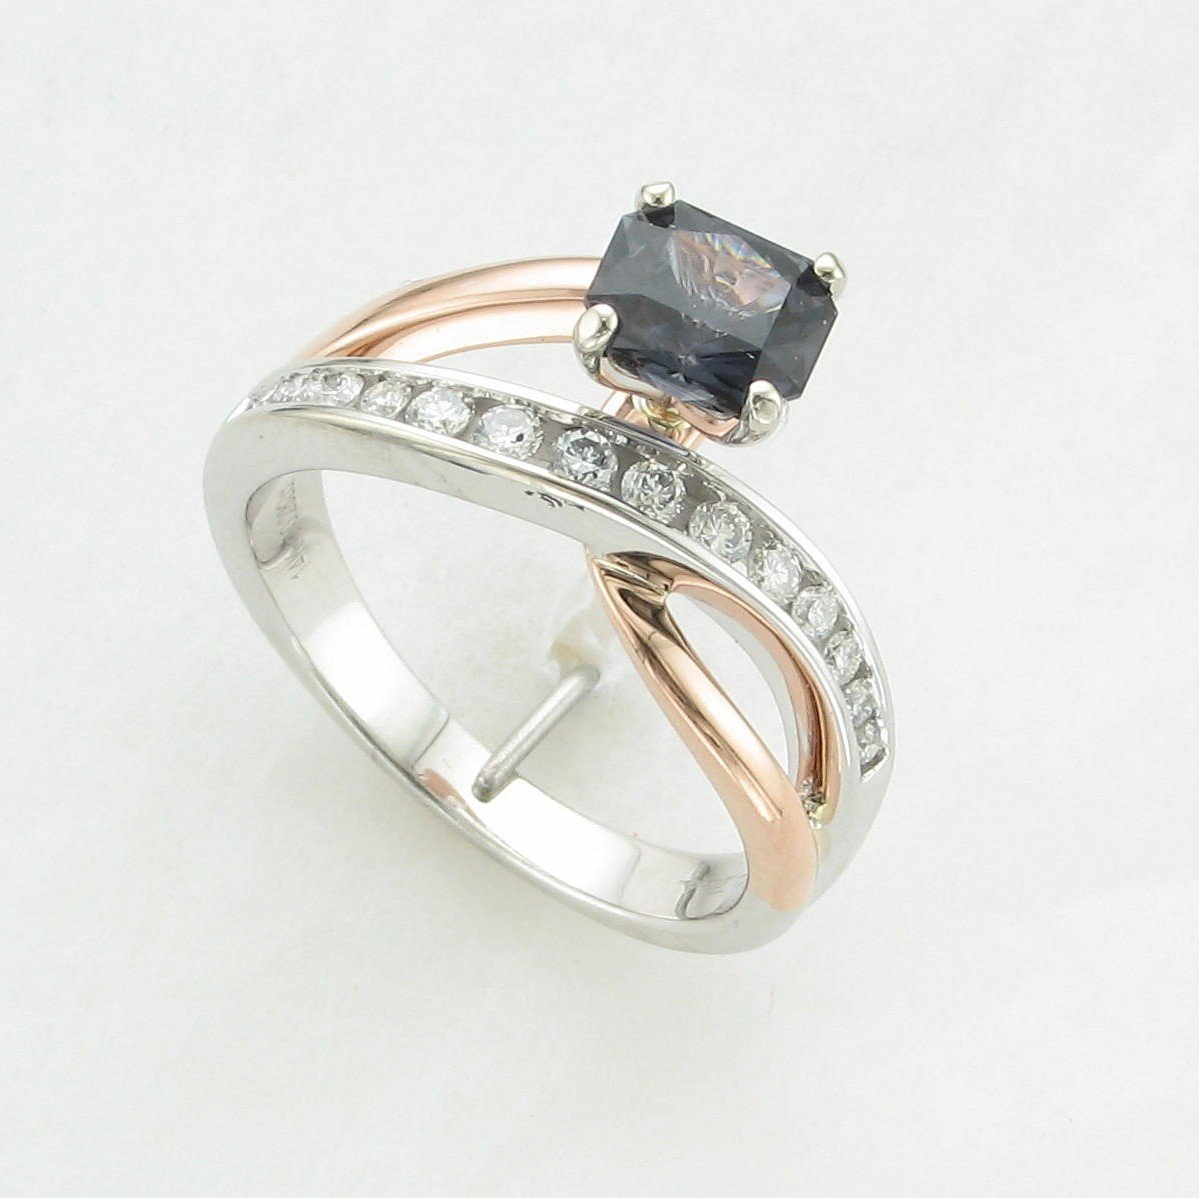 1.09ct Spinel Bypass Diamond Accent Ring in 14K White and Rose Gold